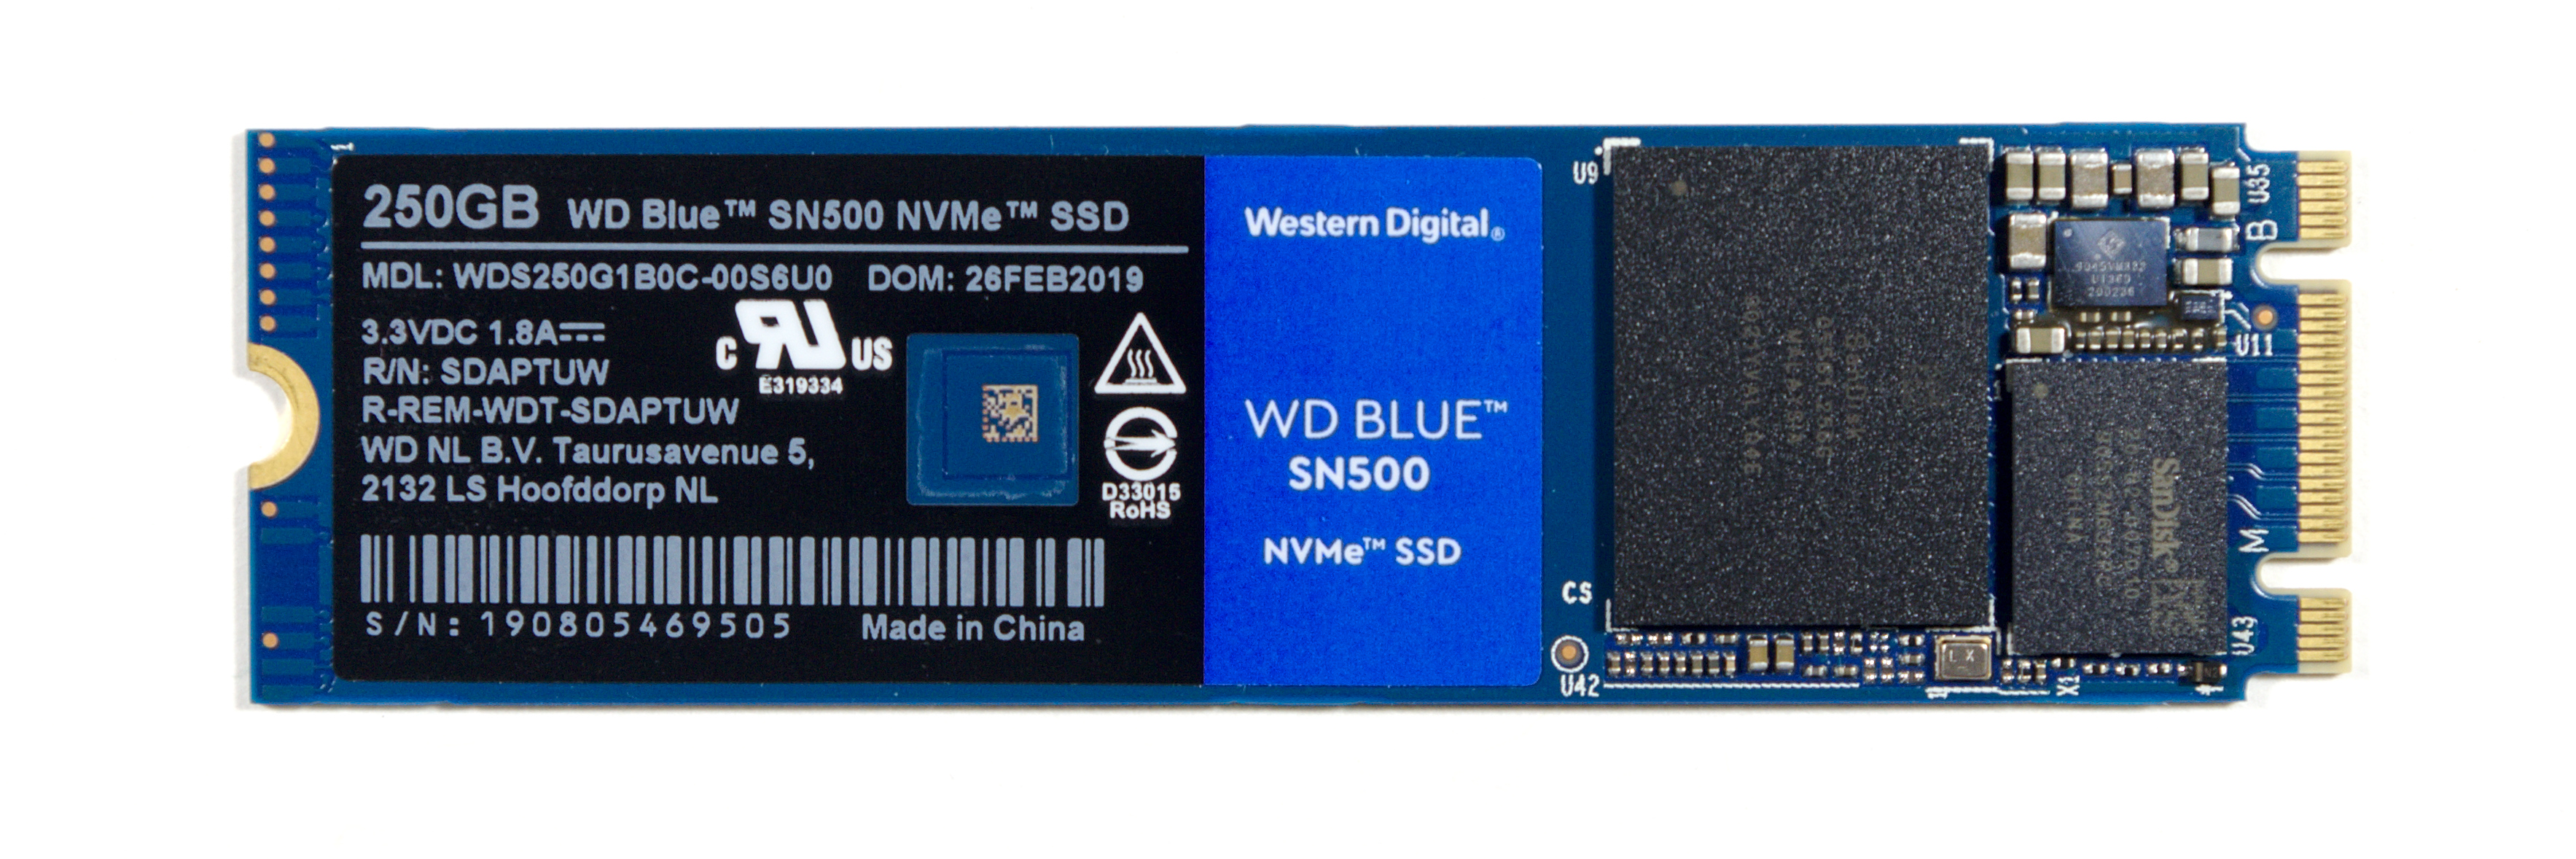 Conclusion - The Western Digital WD Blue SN500 SSD Review